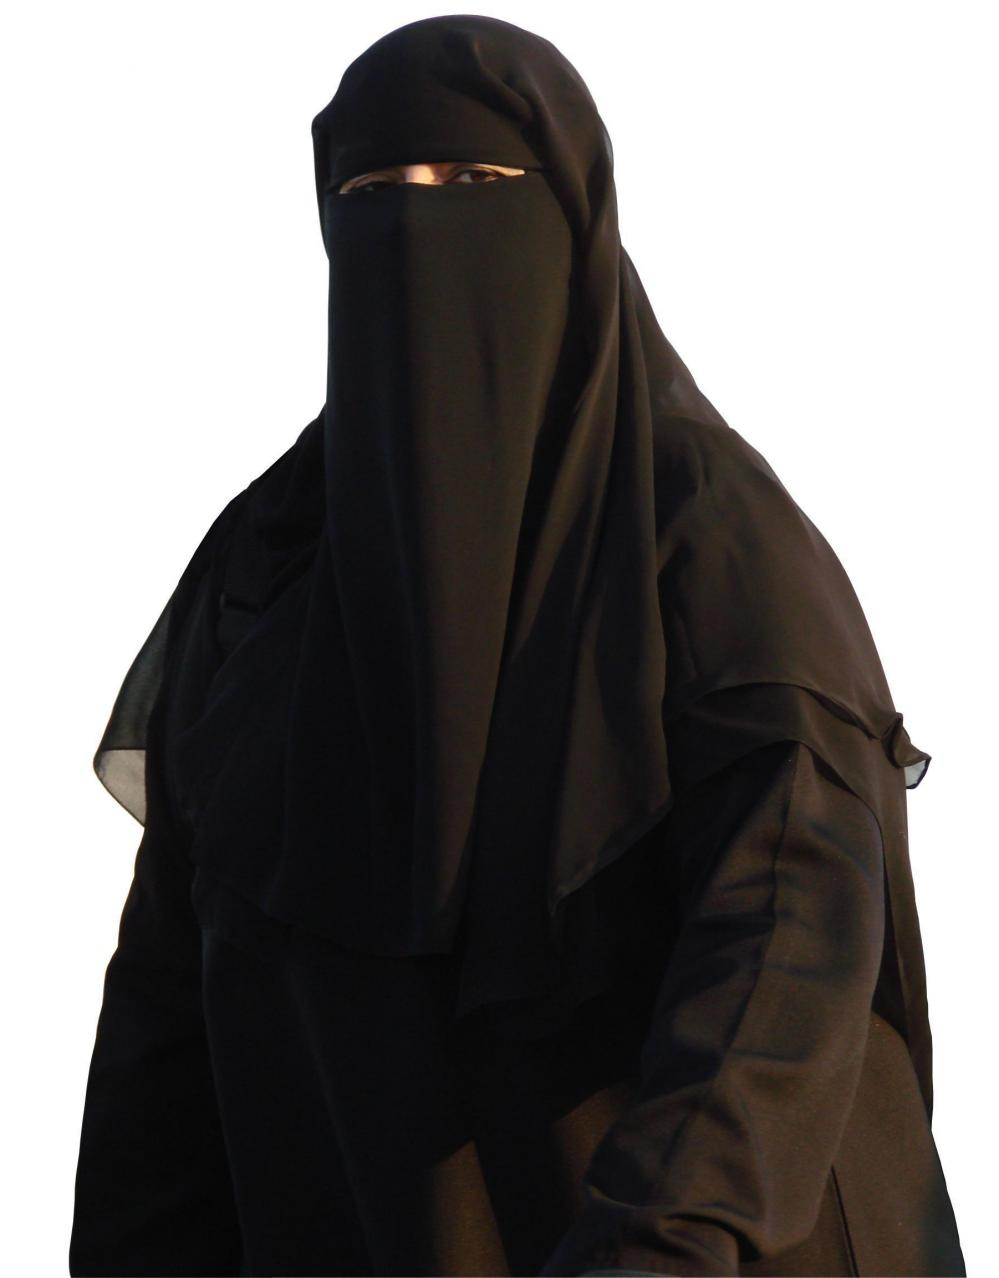 Many women in Saudi Arabia still wear the traditional abaya with full head and face covering, although some women choose now to leave off the face cover